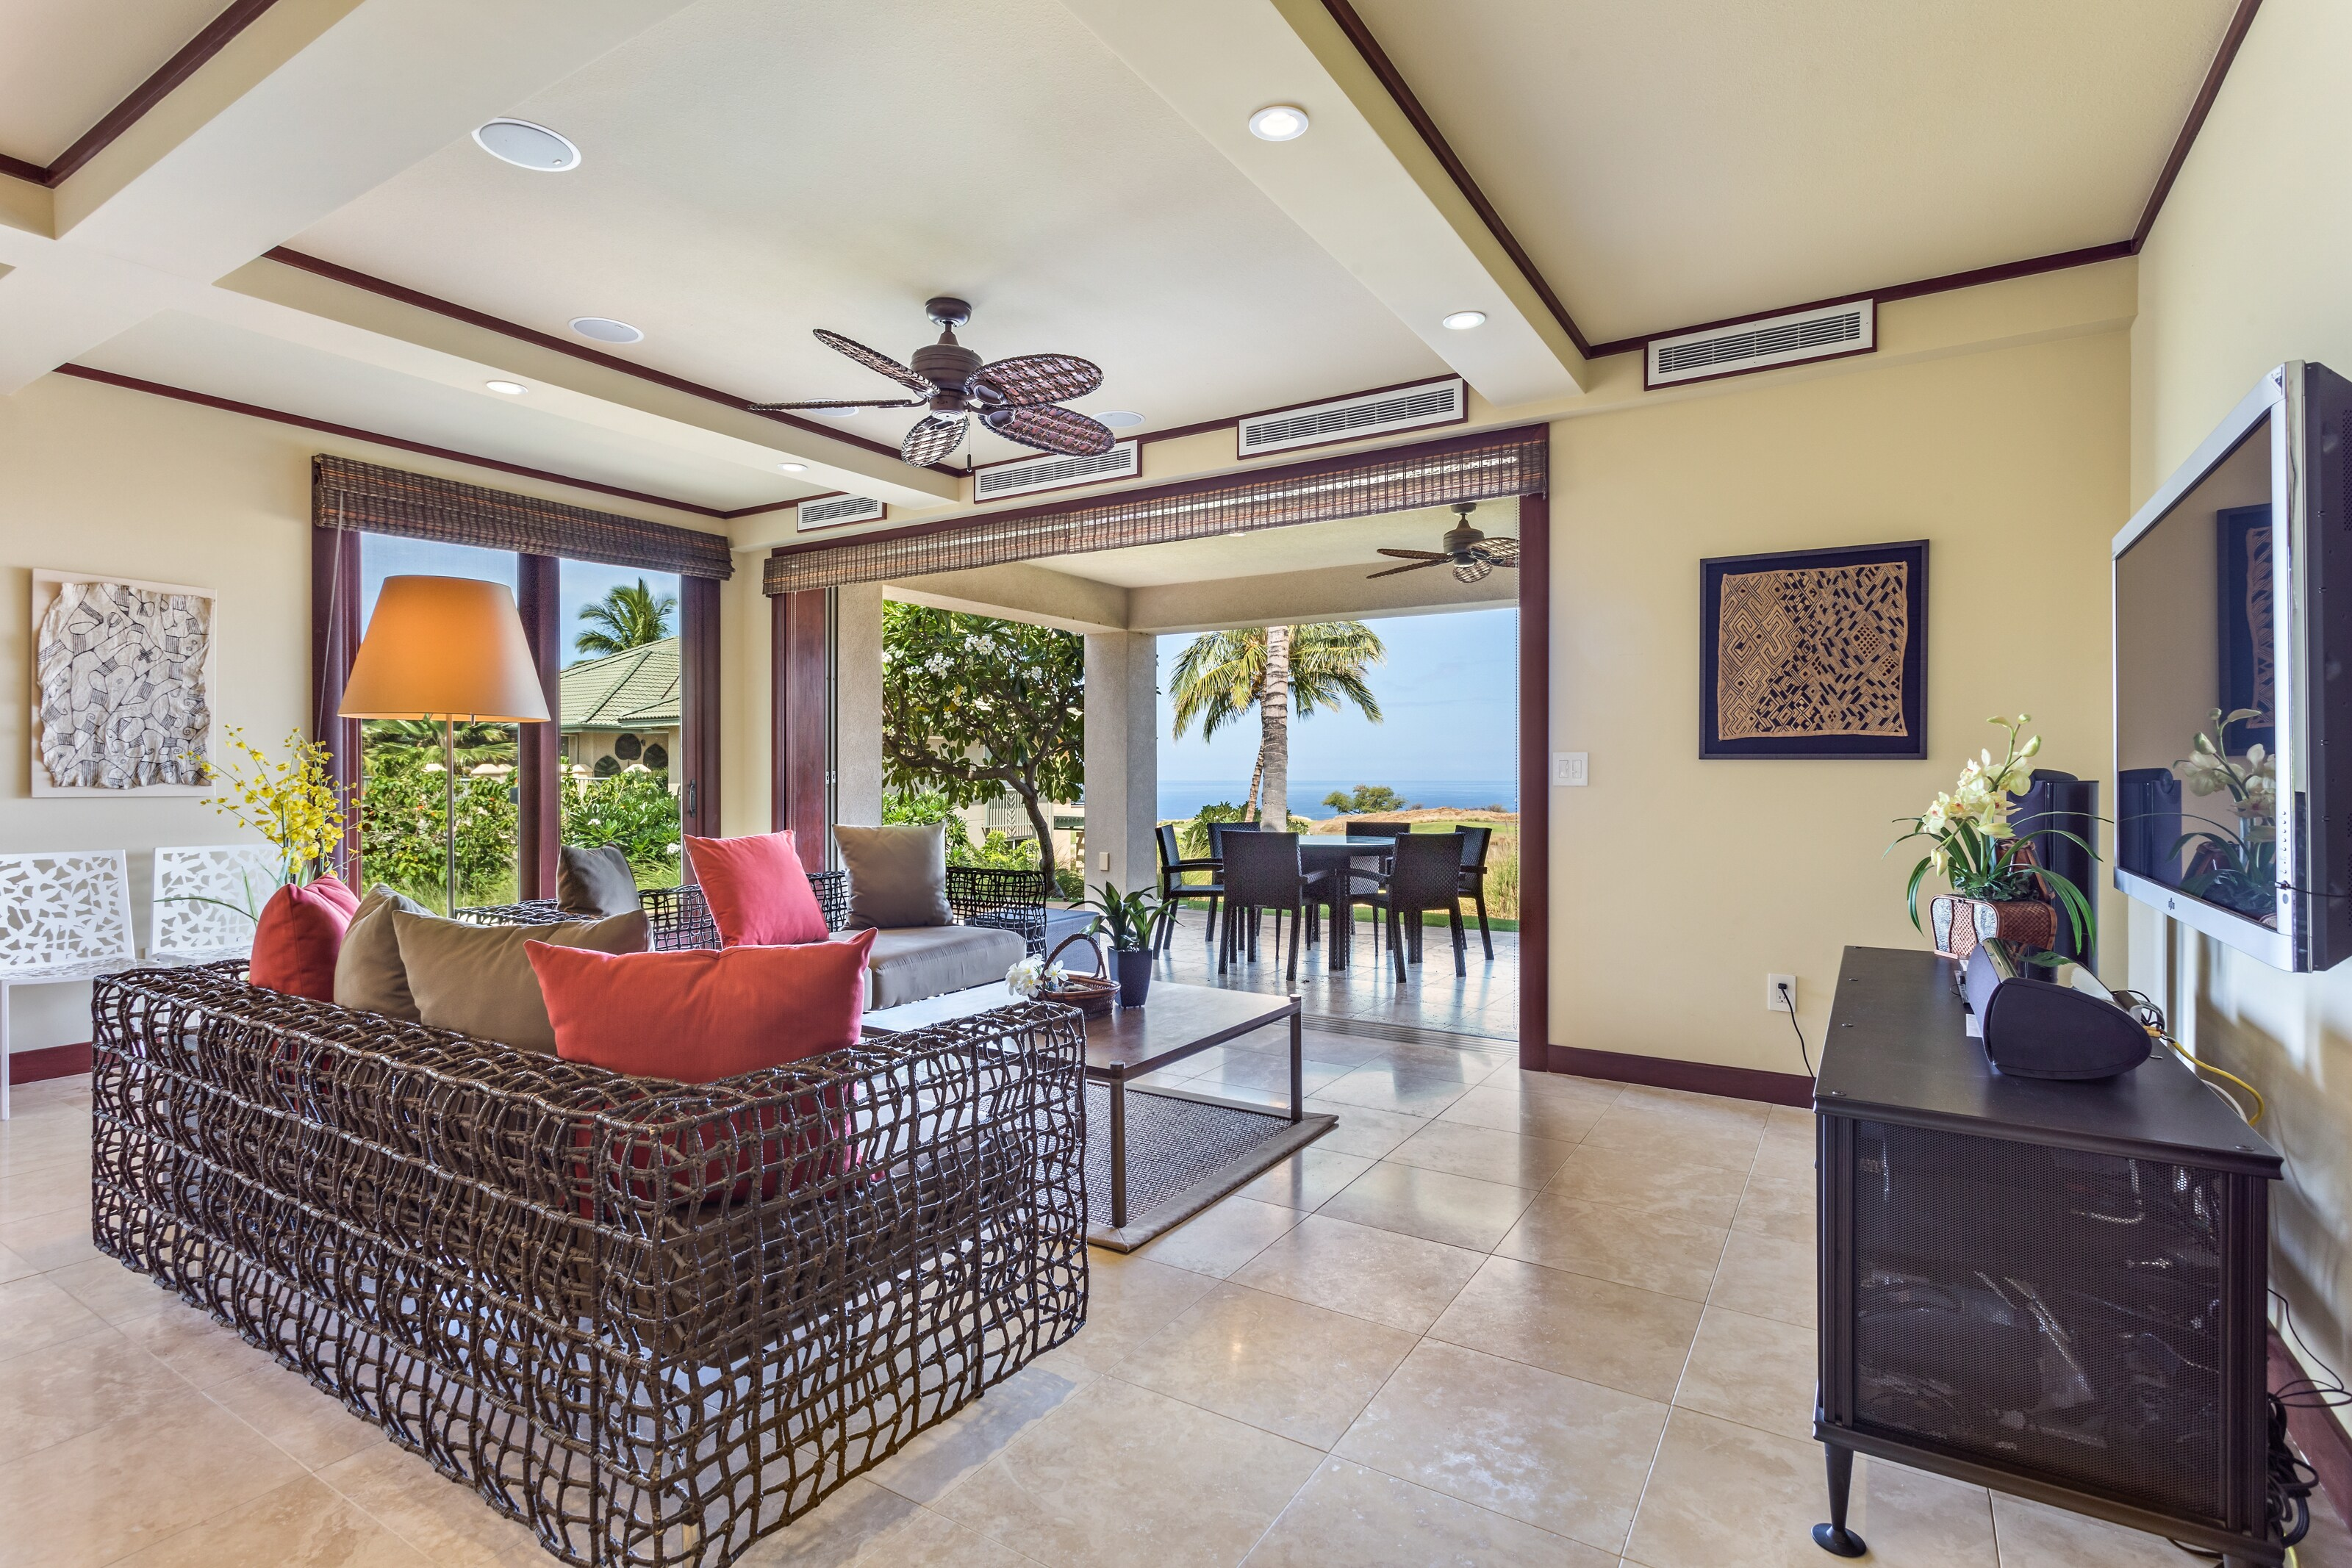 Property Image 1 - Idyllic Indoor/Outdoor Living with Lanai and Chef's Kitchen